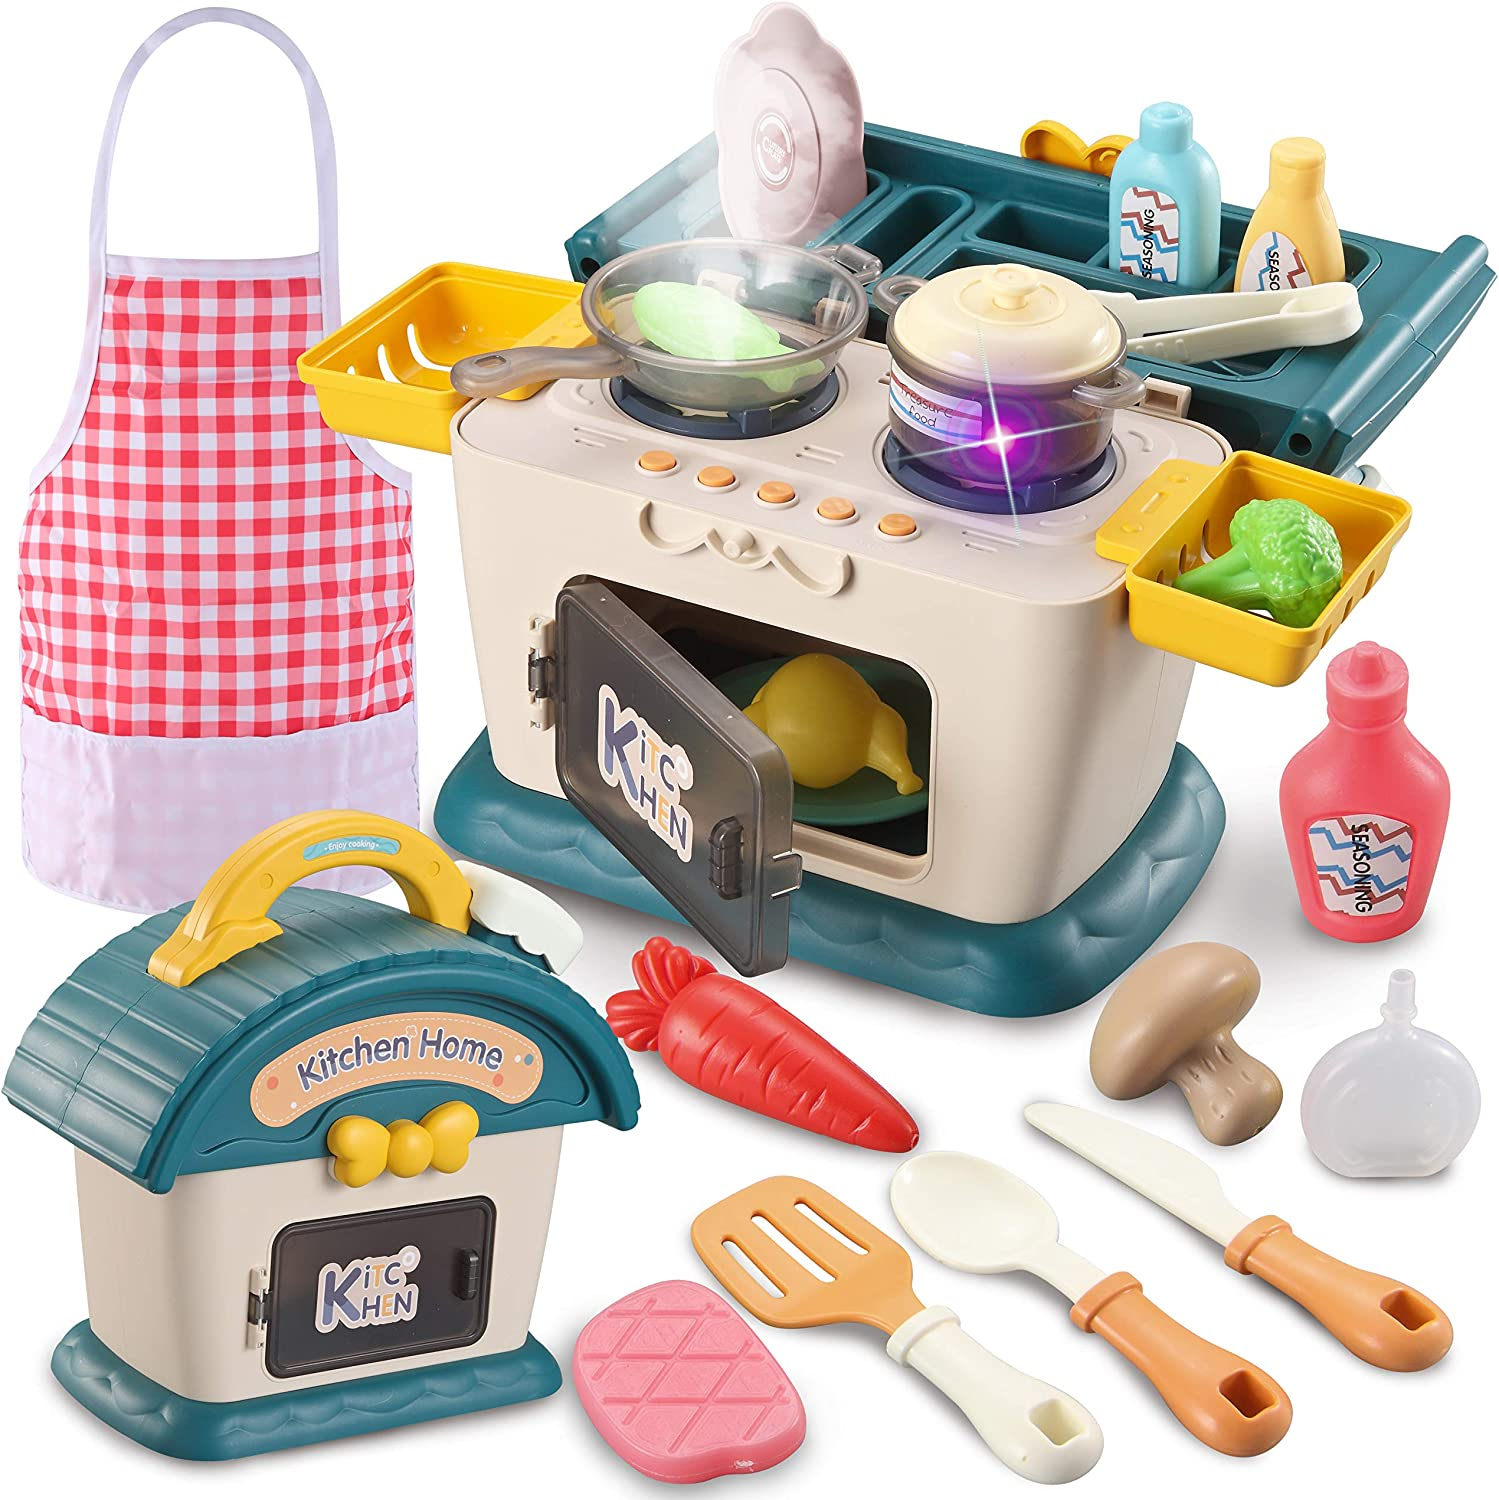 JOYIN 24 pcs Little Kitchen House Play Set Kitchen House Play Toy for Kids with Simulation of Spray, Music & Lights, Color Changing Play Food Kitchen Toy Sets Gift for Kids Boys Girls